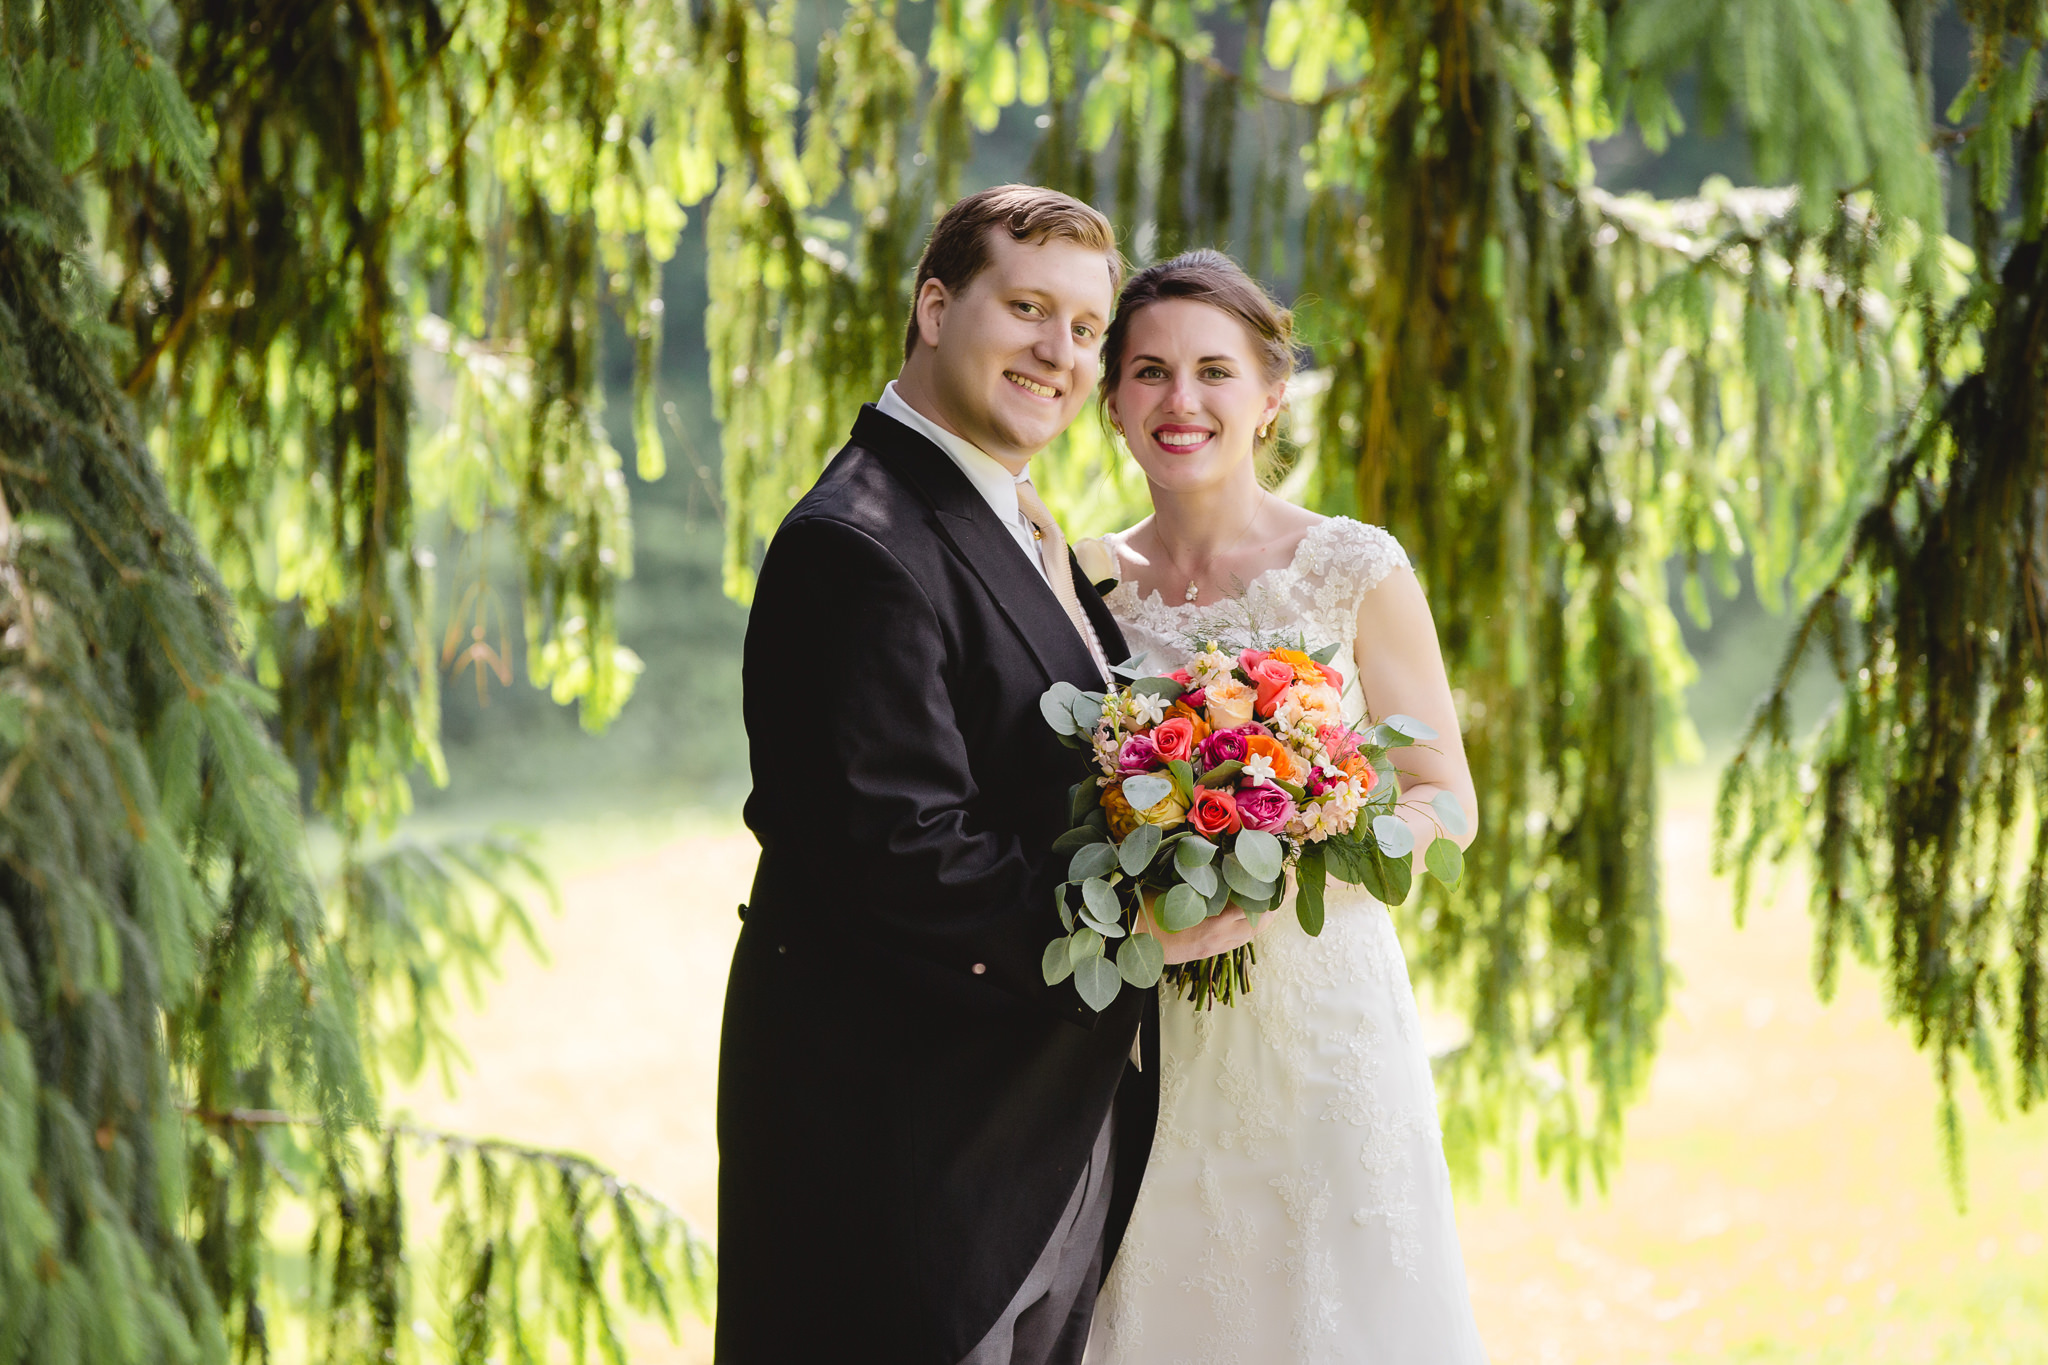 Bride & groom portraits at Shannopin Country Club in Pittsburgh PA